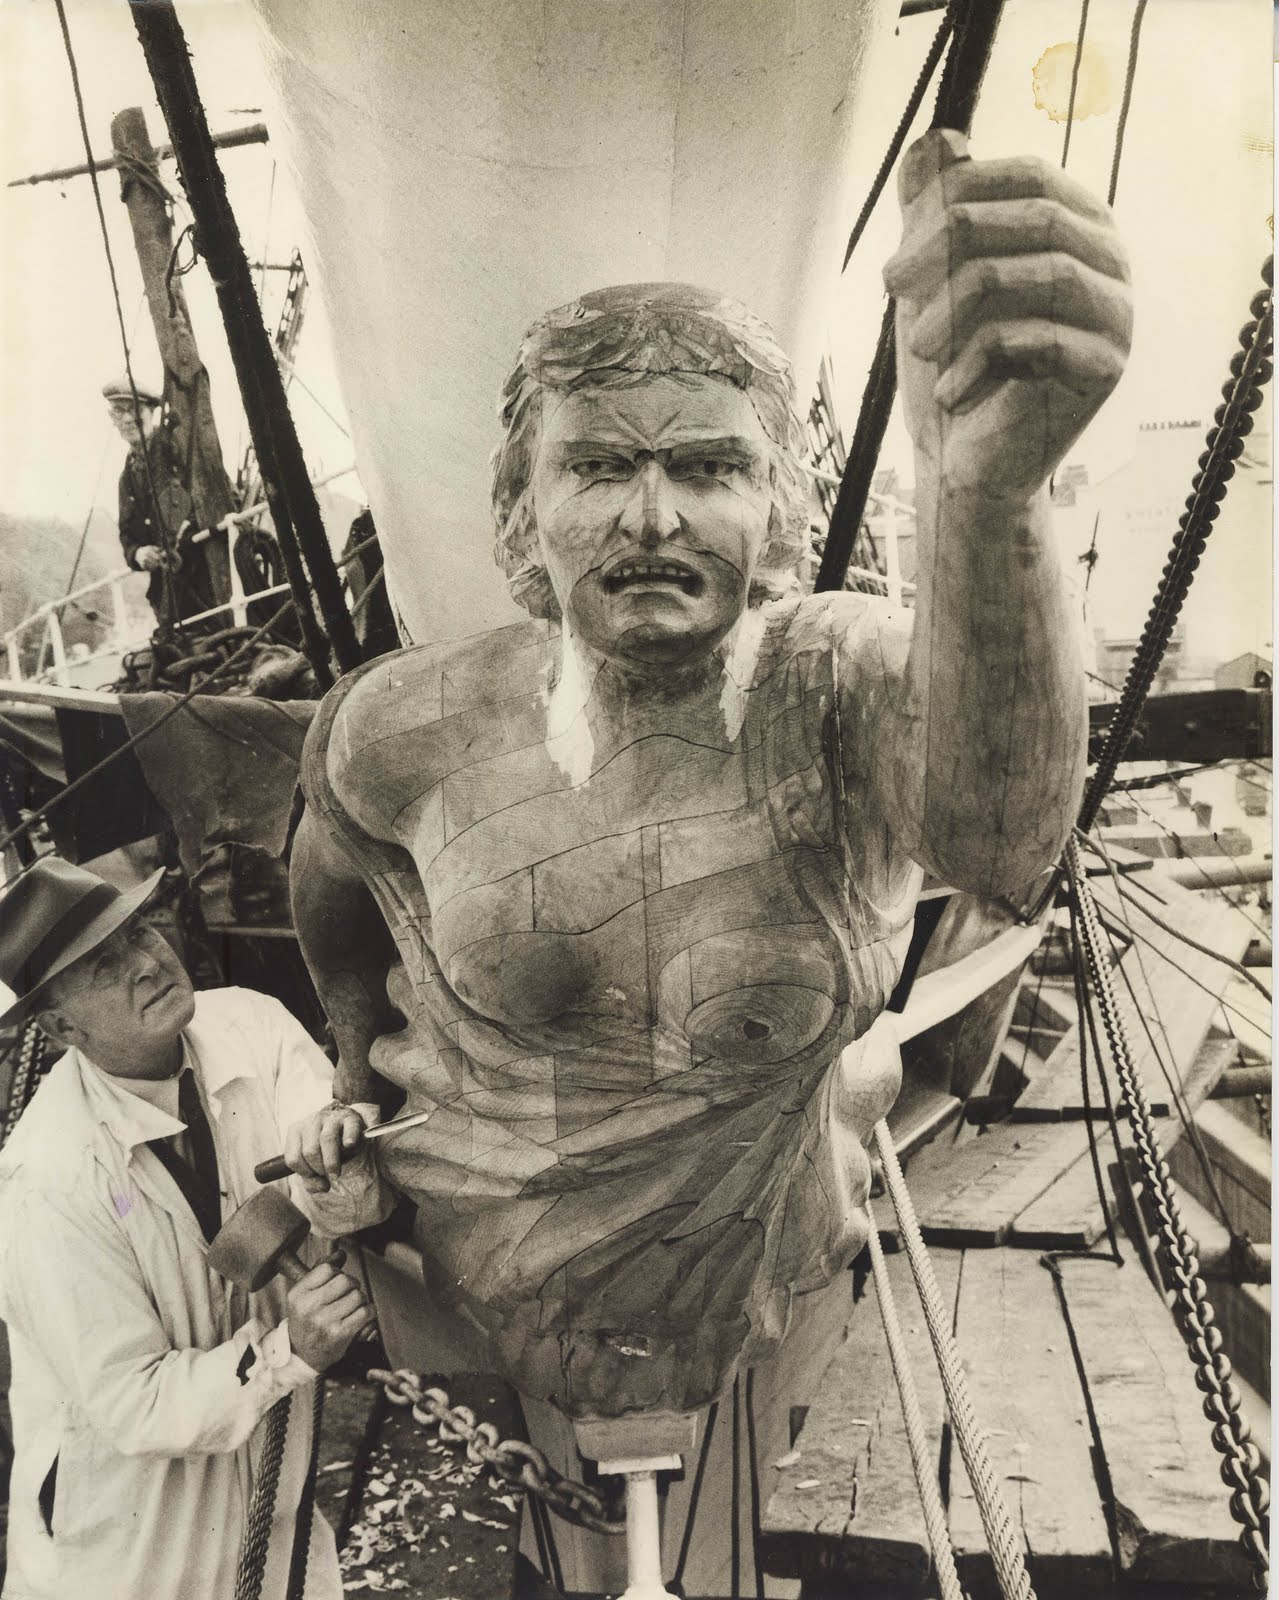 cutty sark receives her figurehead